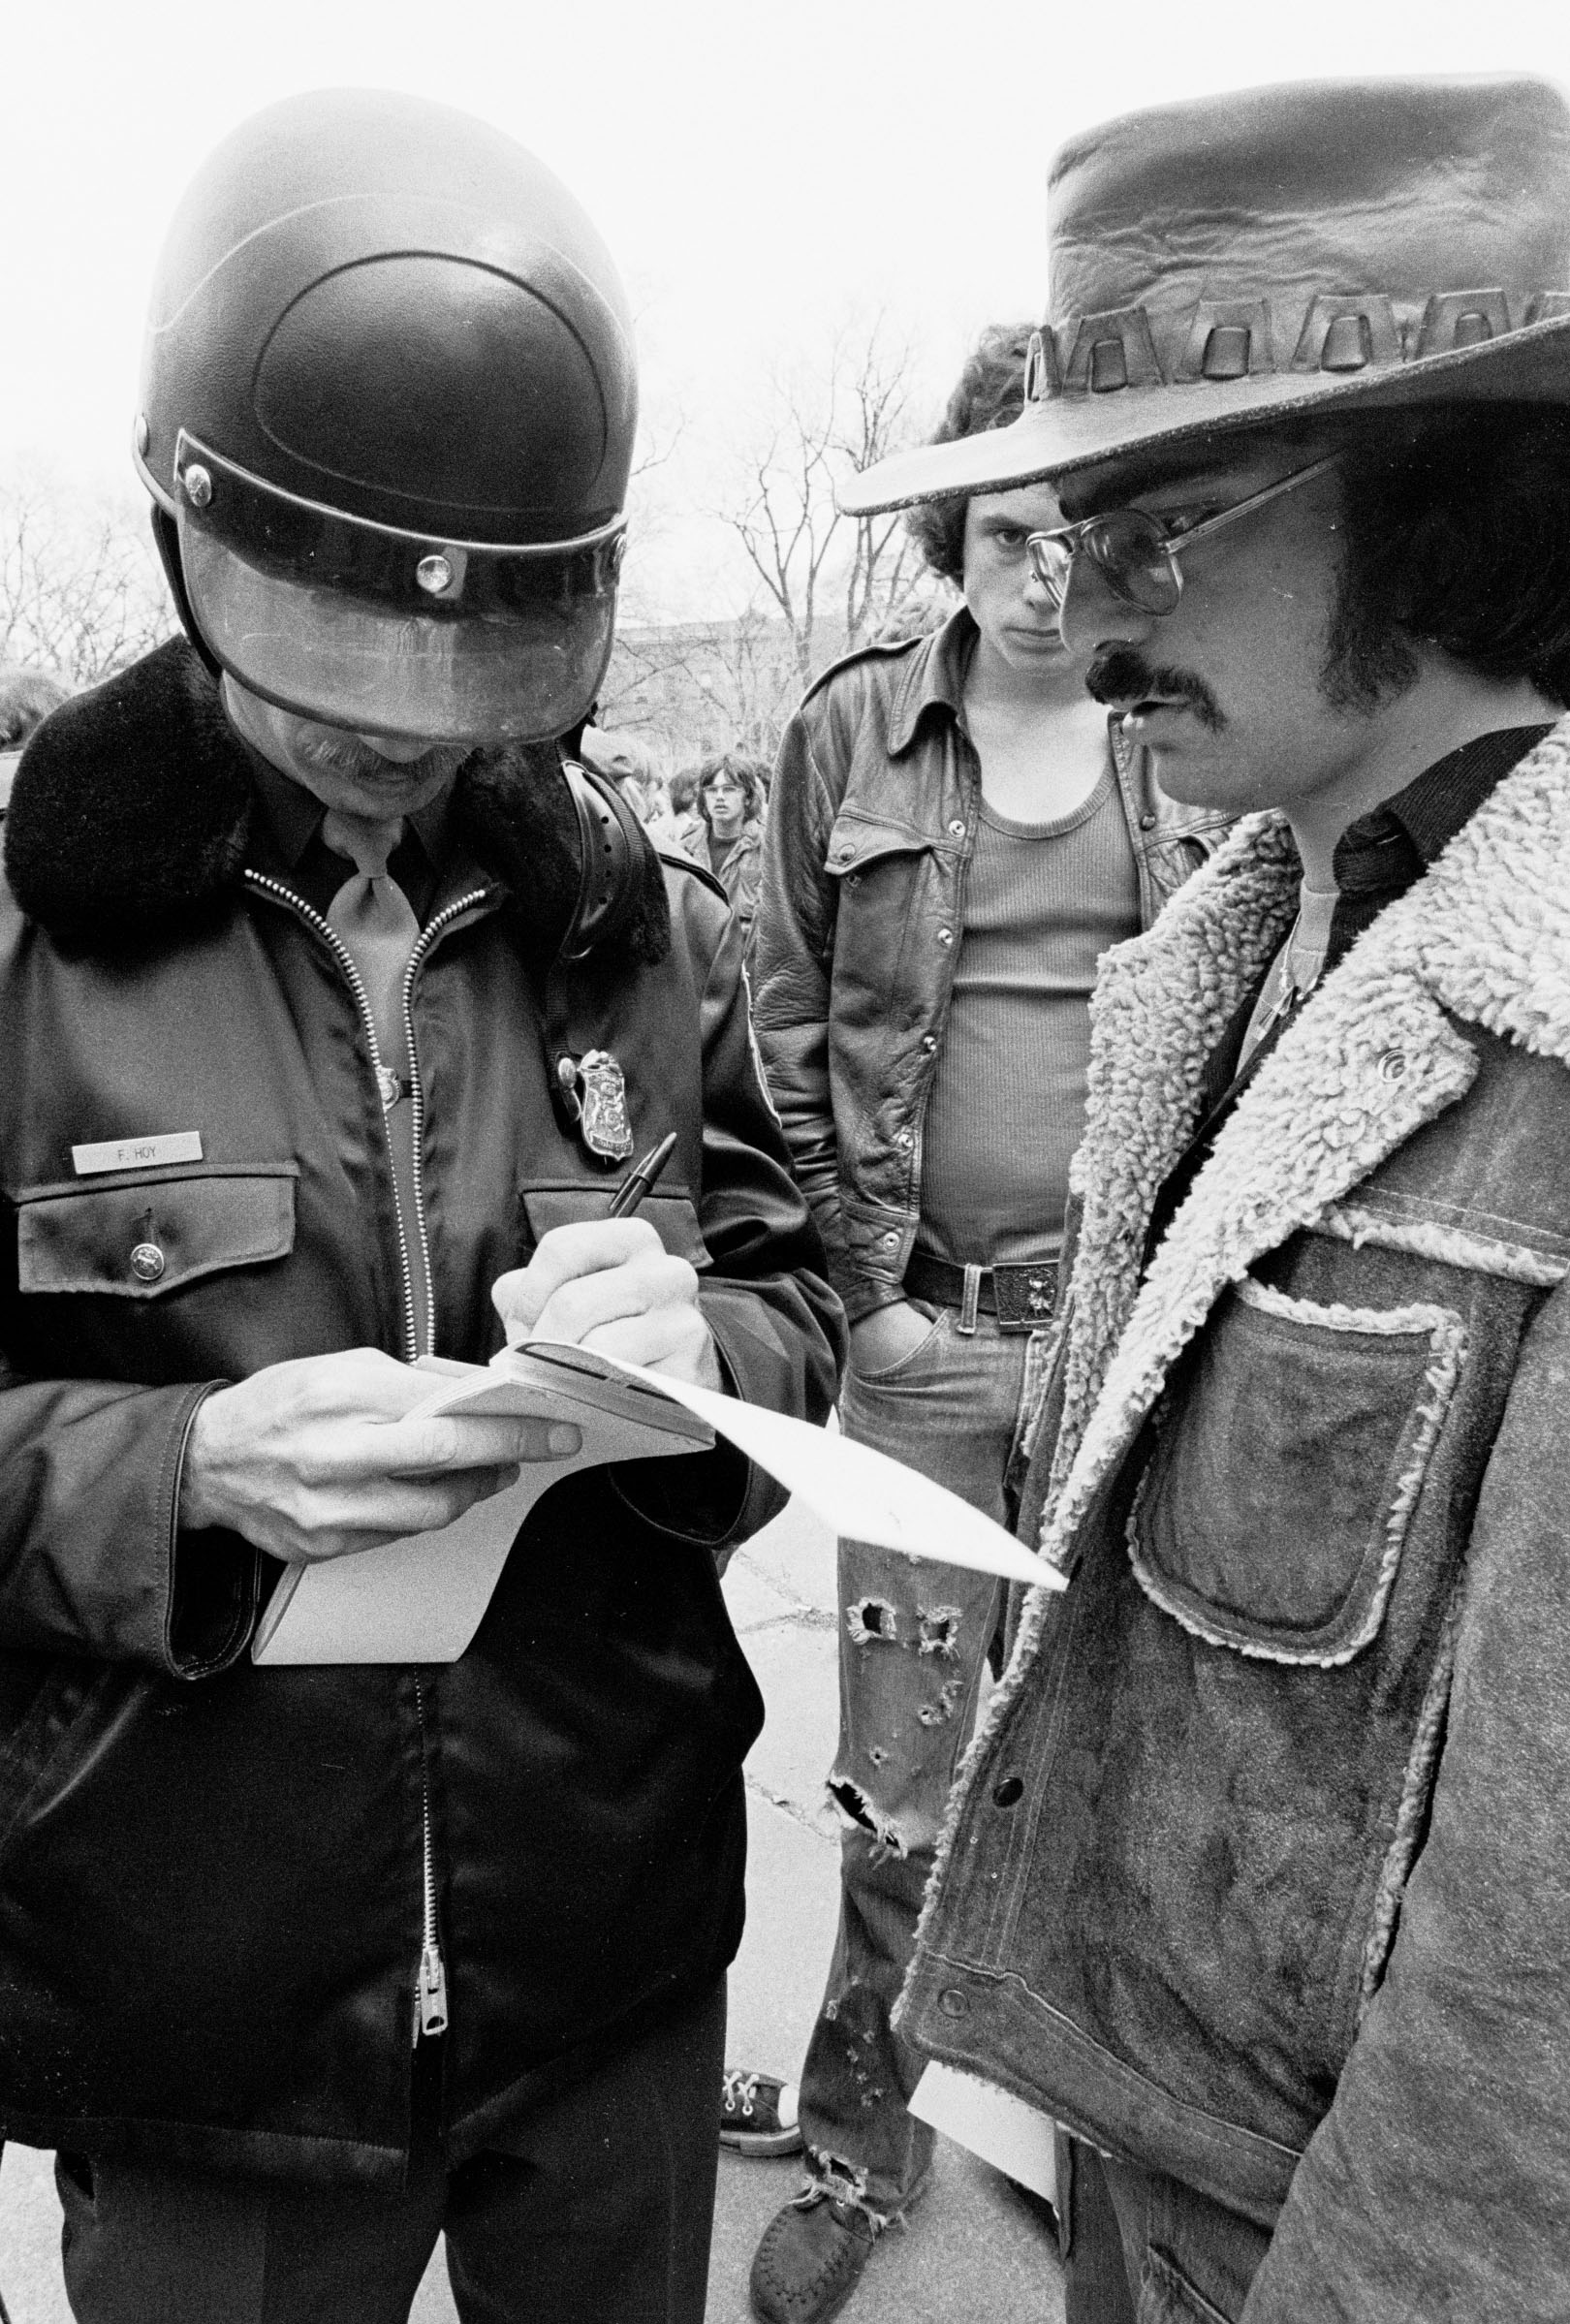 Ann Arbor Hash Bash, April 2, 1977 image